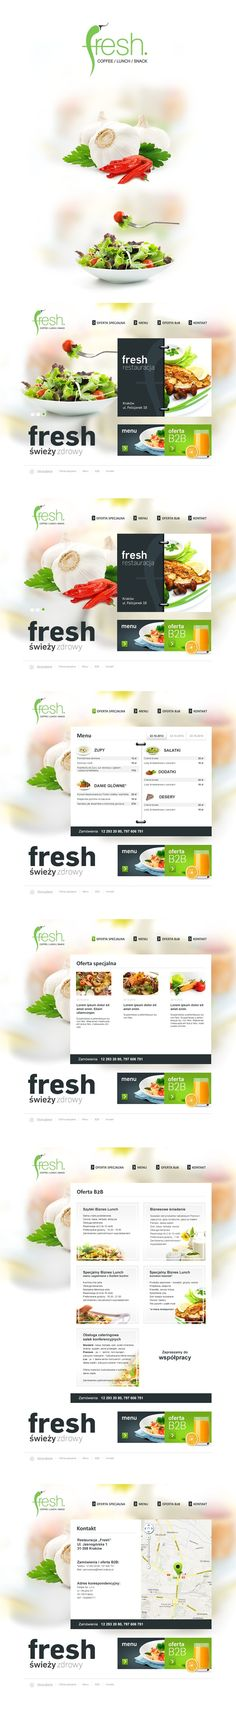 Fresh | #webdesign #it #web #design #animation #layout #userinterface #website #webdesign | Visit our website http://www.intelex.ca/in_550